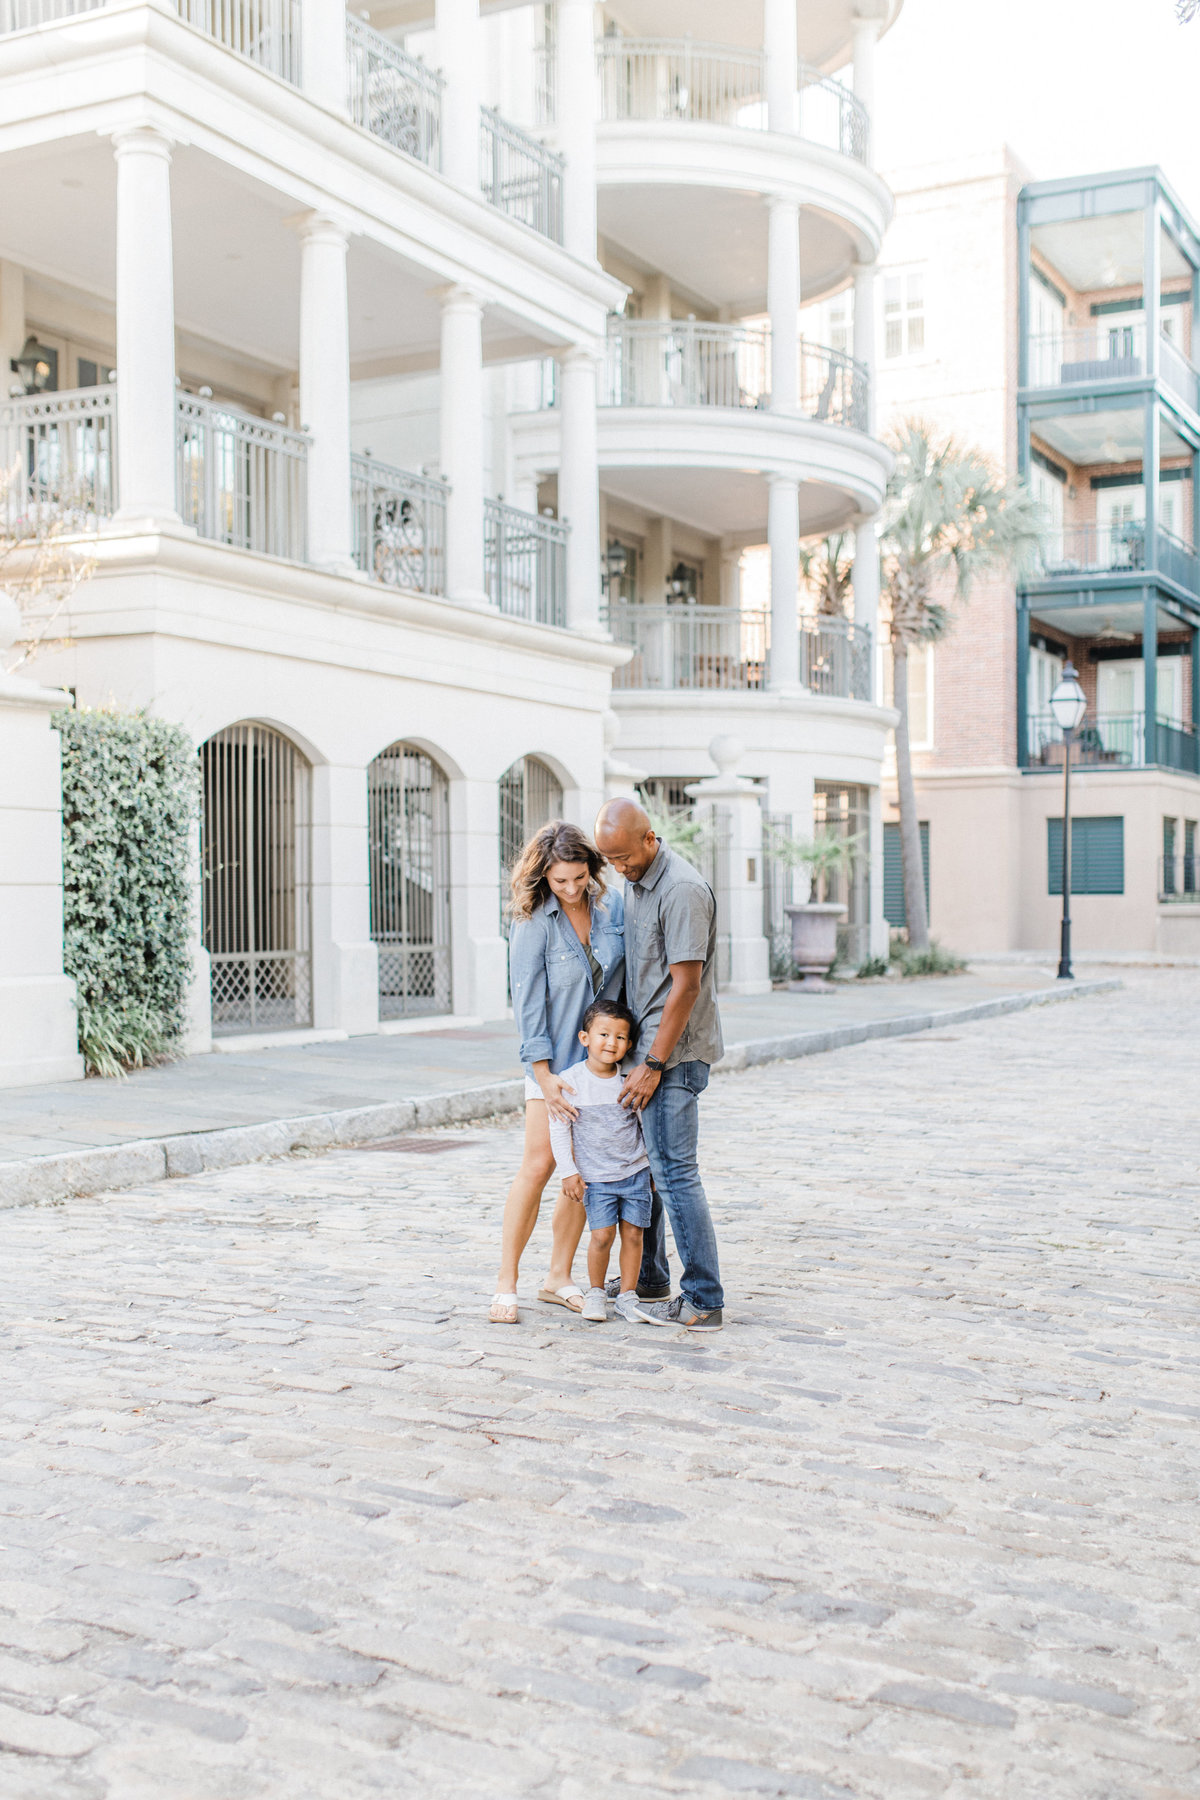 Downtown-Charleston-Family-Photos-Laura-Ryan-Photography-16